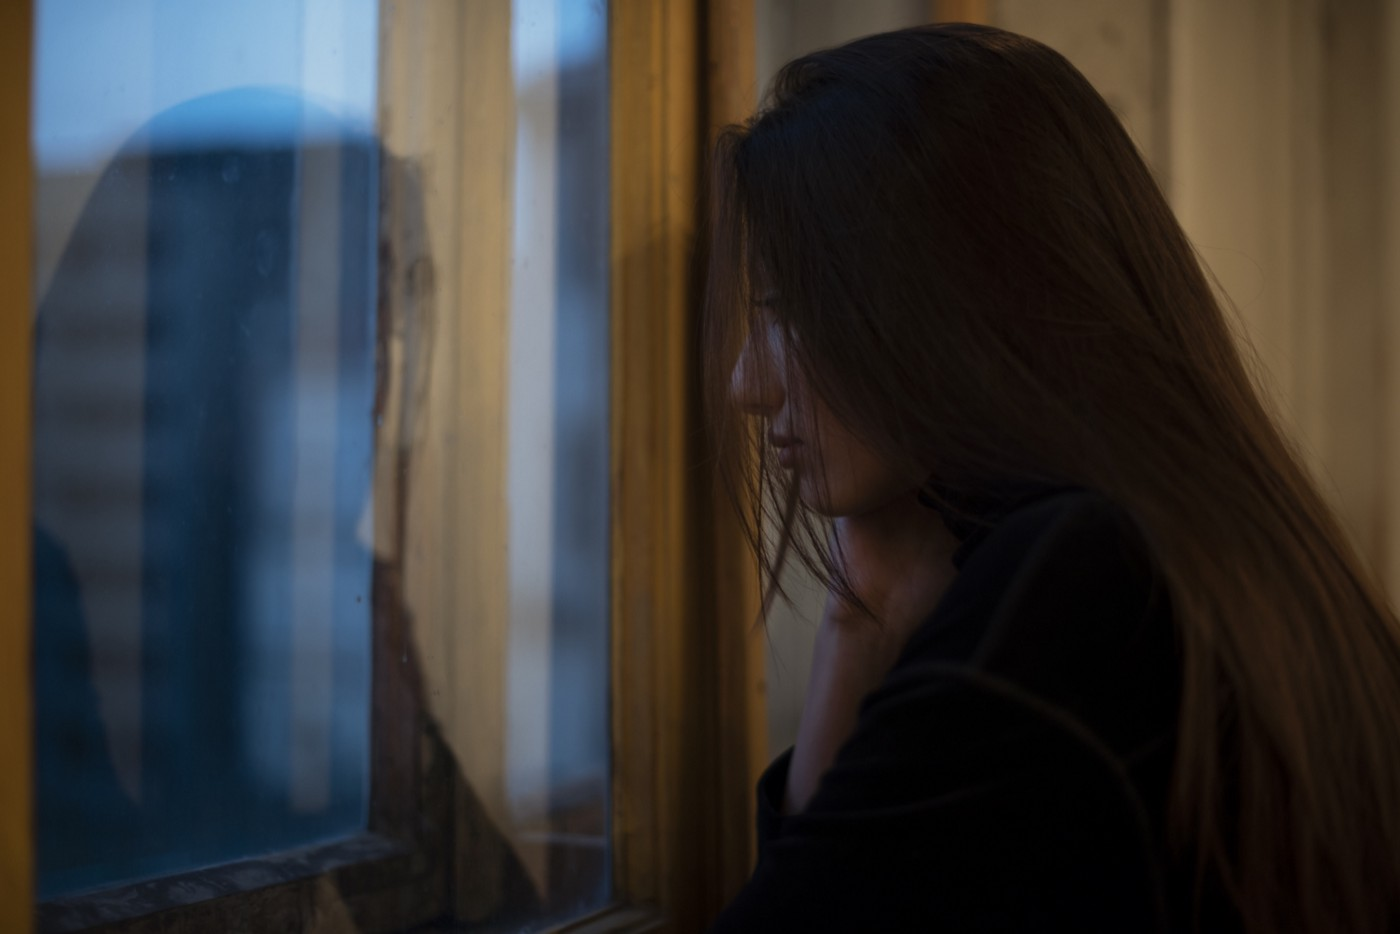 A photo of a sad woman with long hair looking out the window.